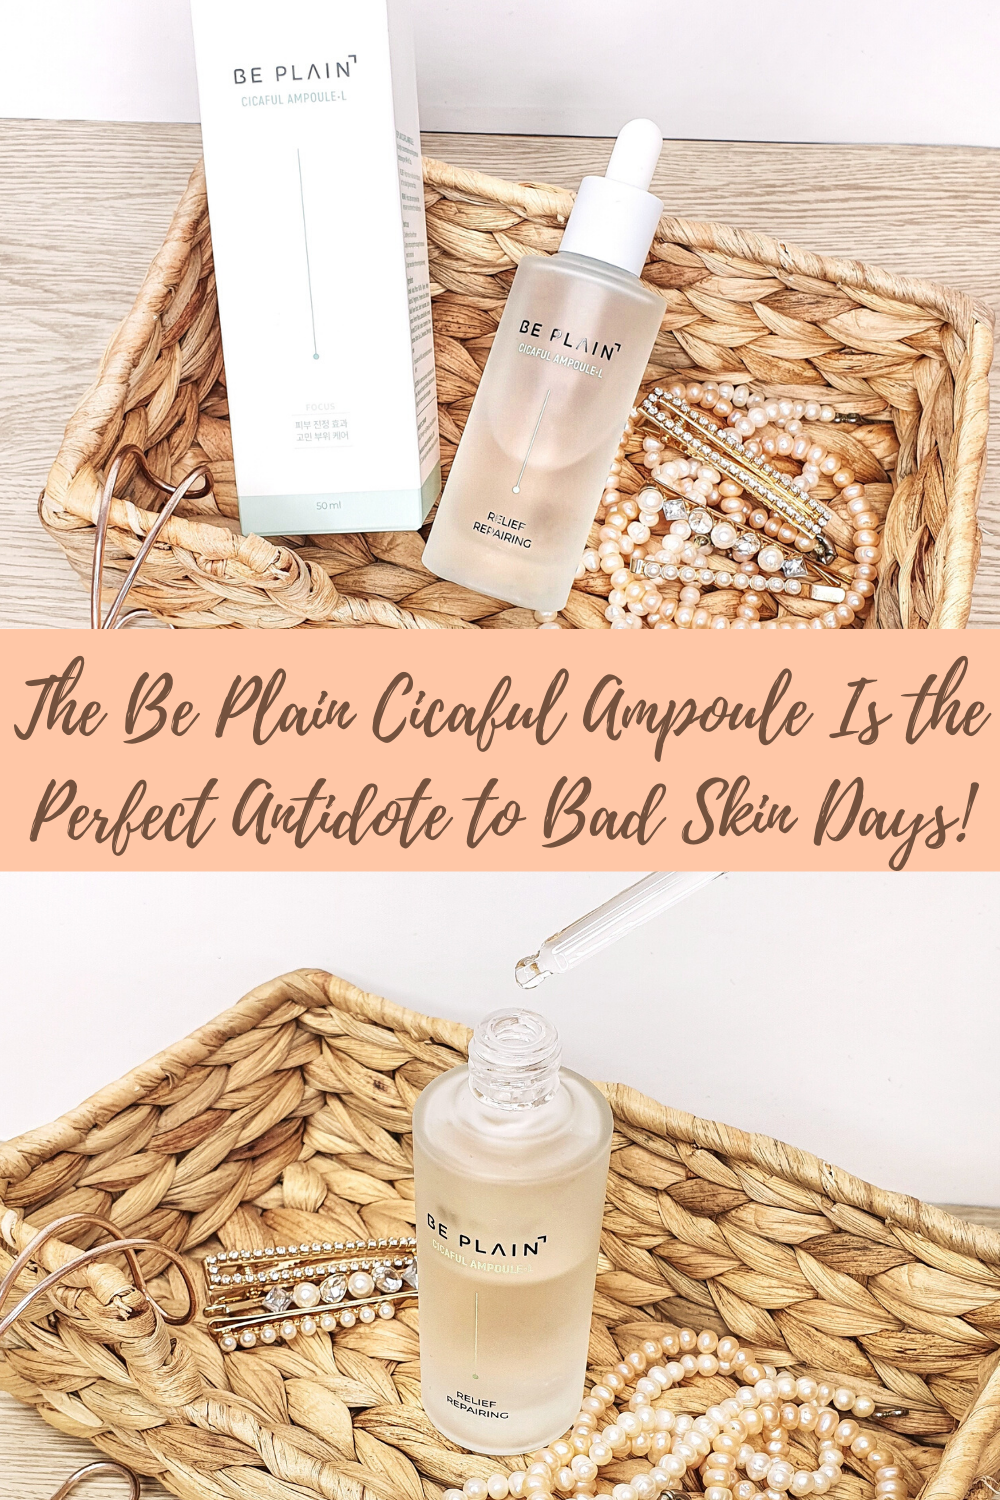 The Be Plain Cicaful Ampoule Is the Perfect Antidote to Bad Skin Days!